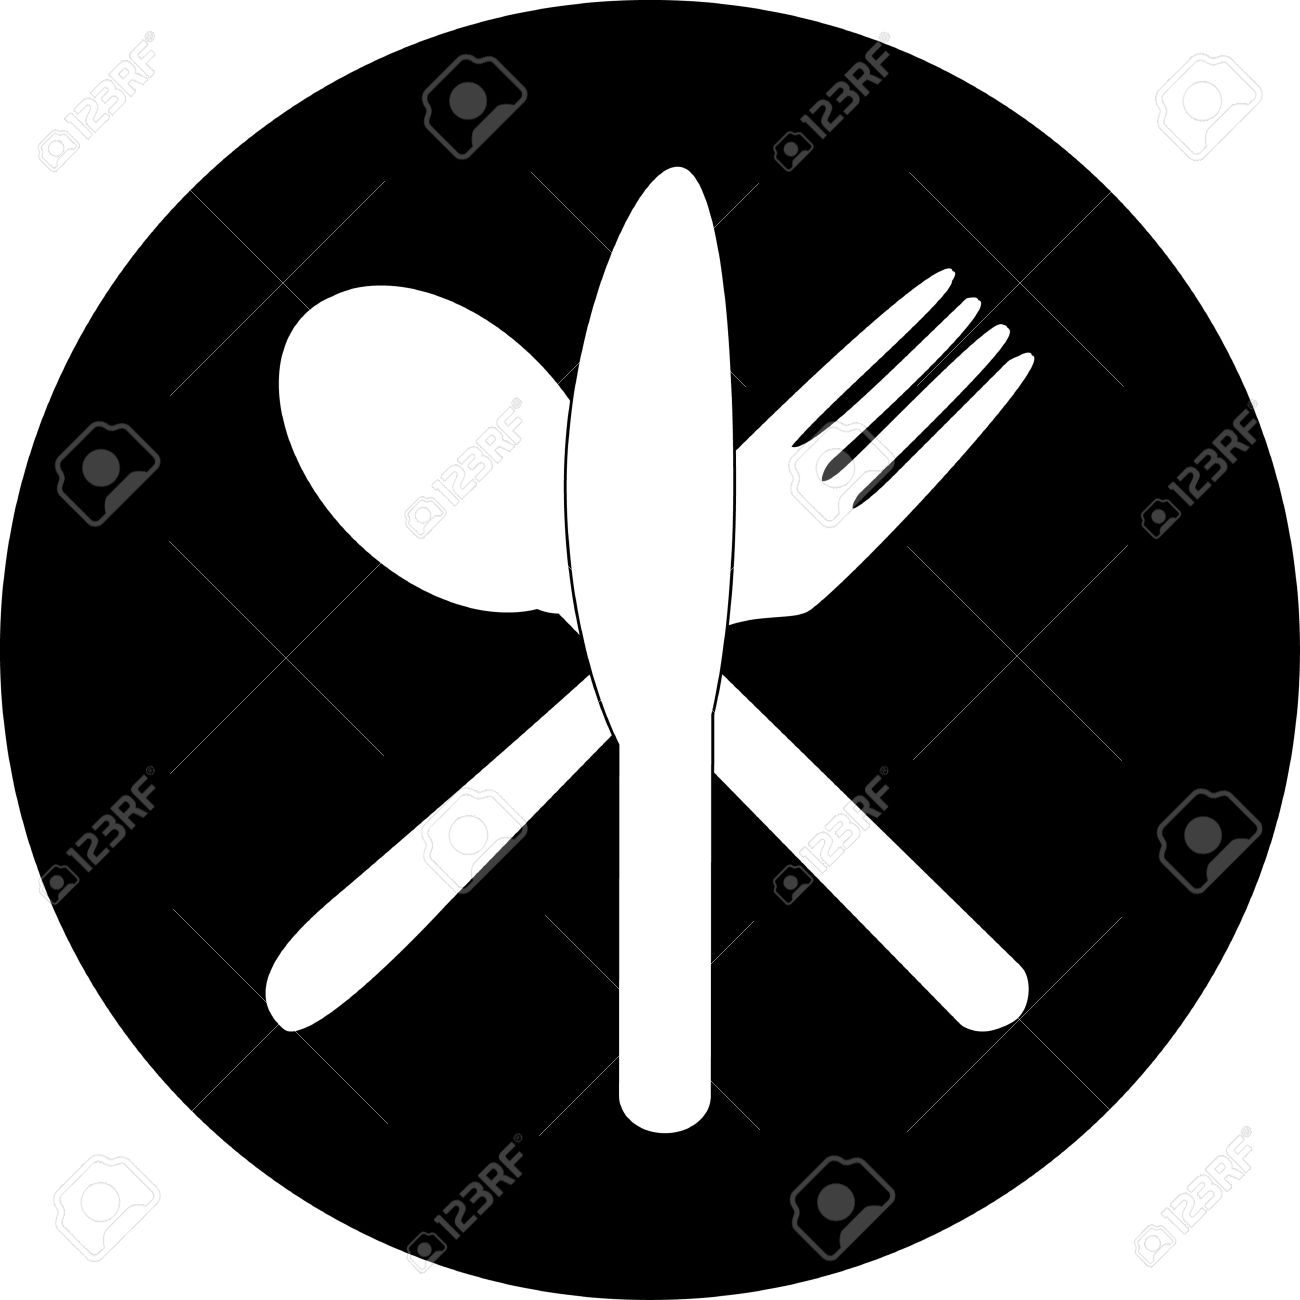 Knife Fork Spoon Silhouette At Getdrawings Com Free For